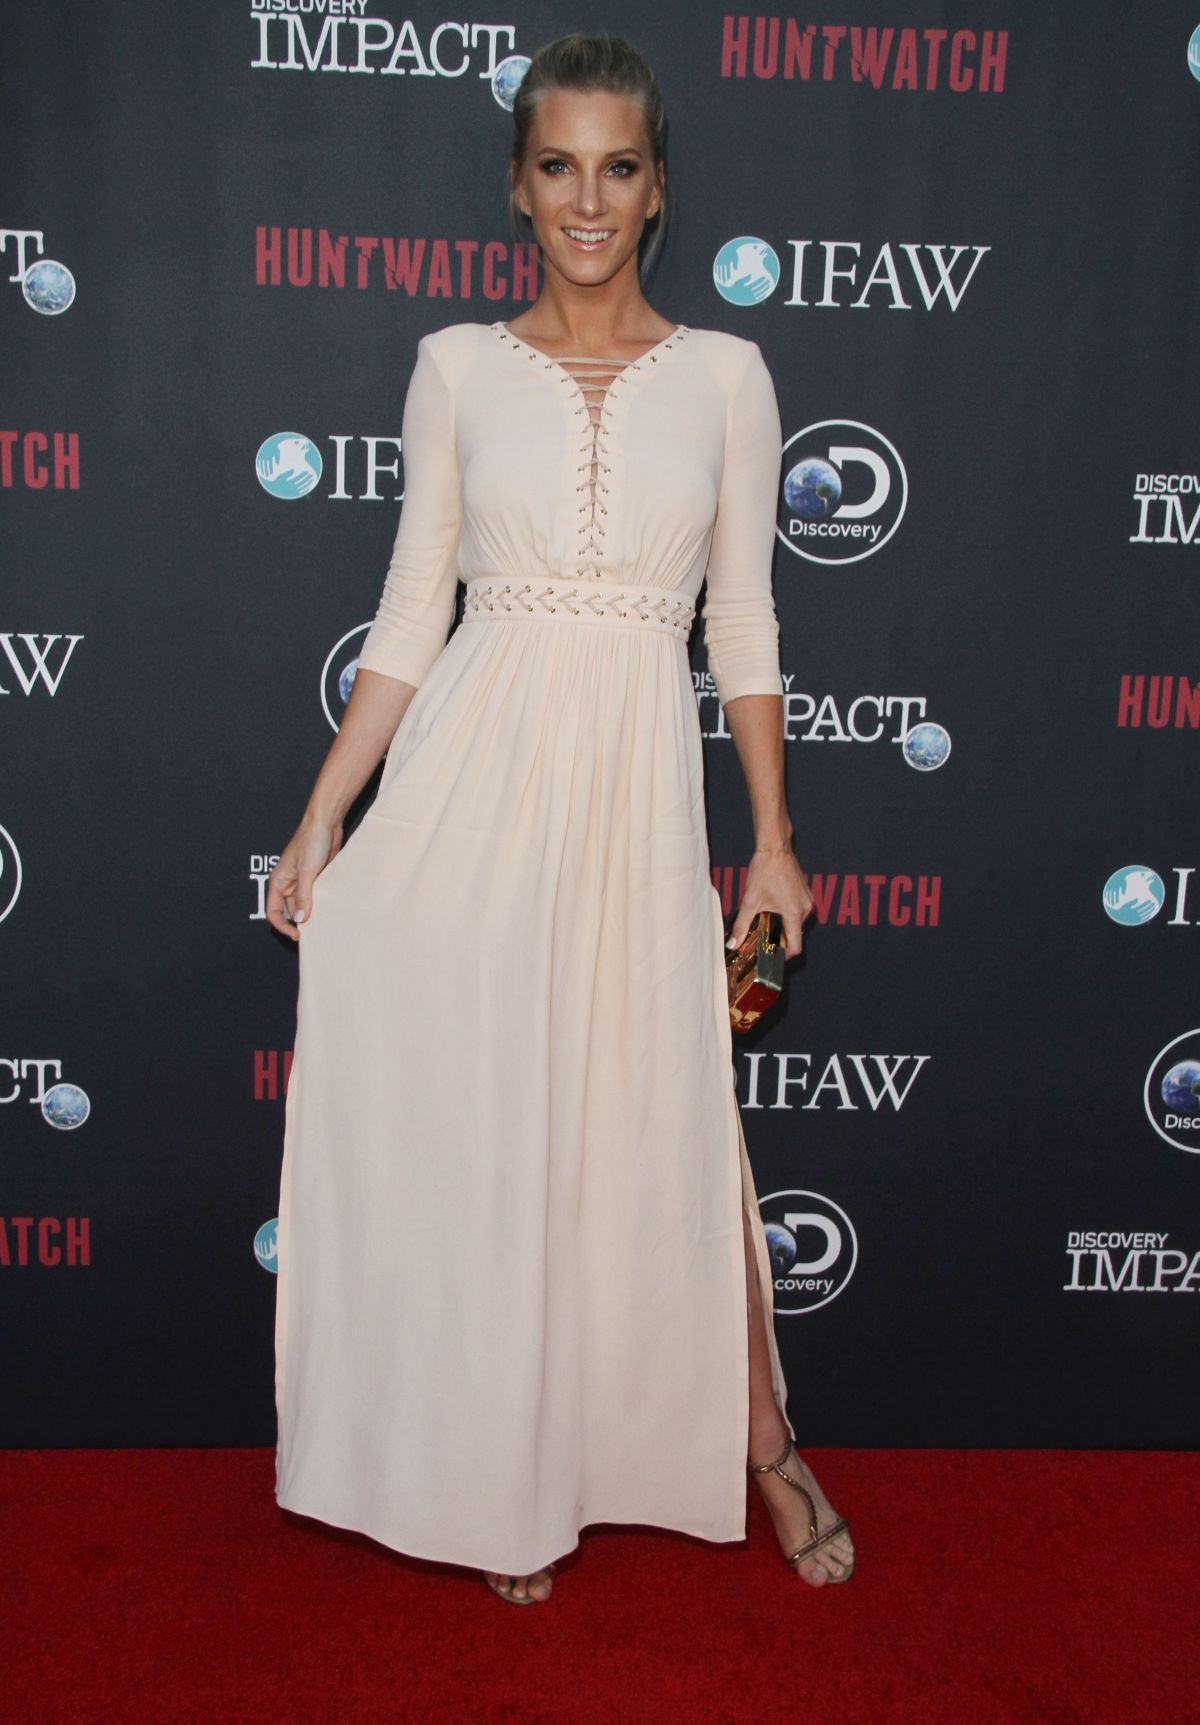 HEATHER MORRIS at 'Huntwatch' Documentary Special ...